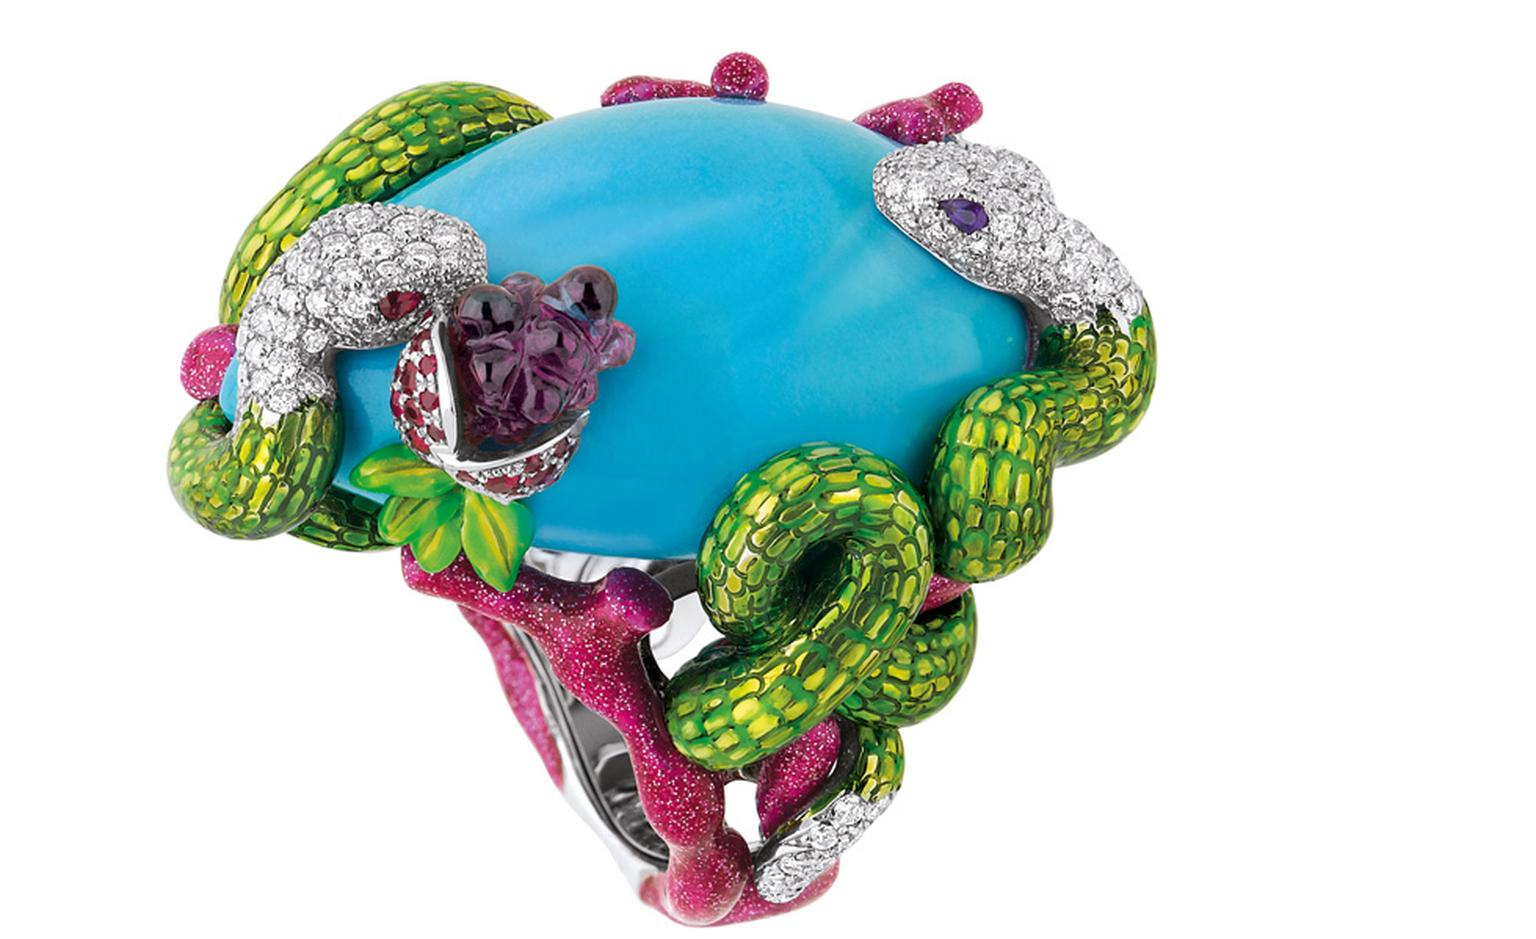 Dior high jewellery ring with enamelled snake